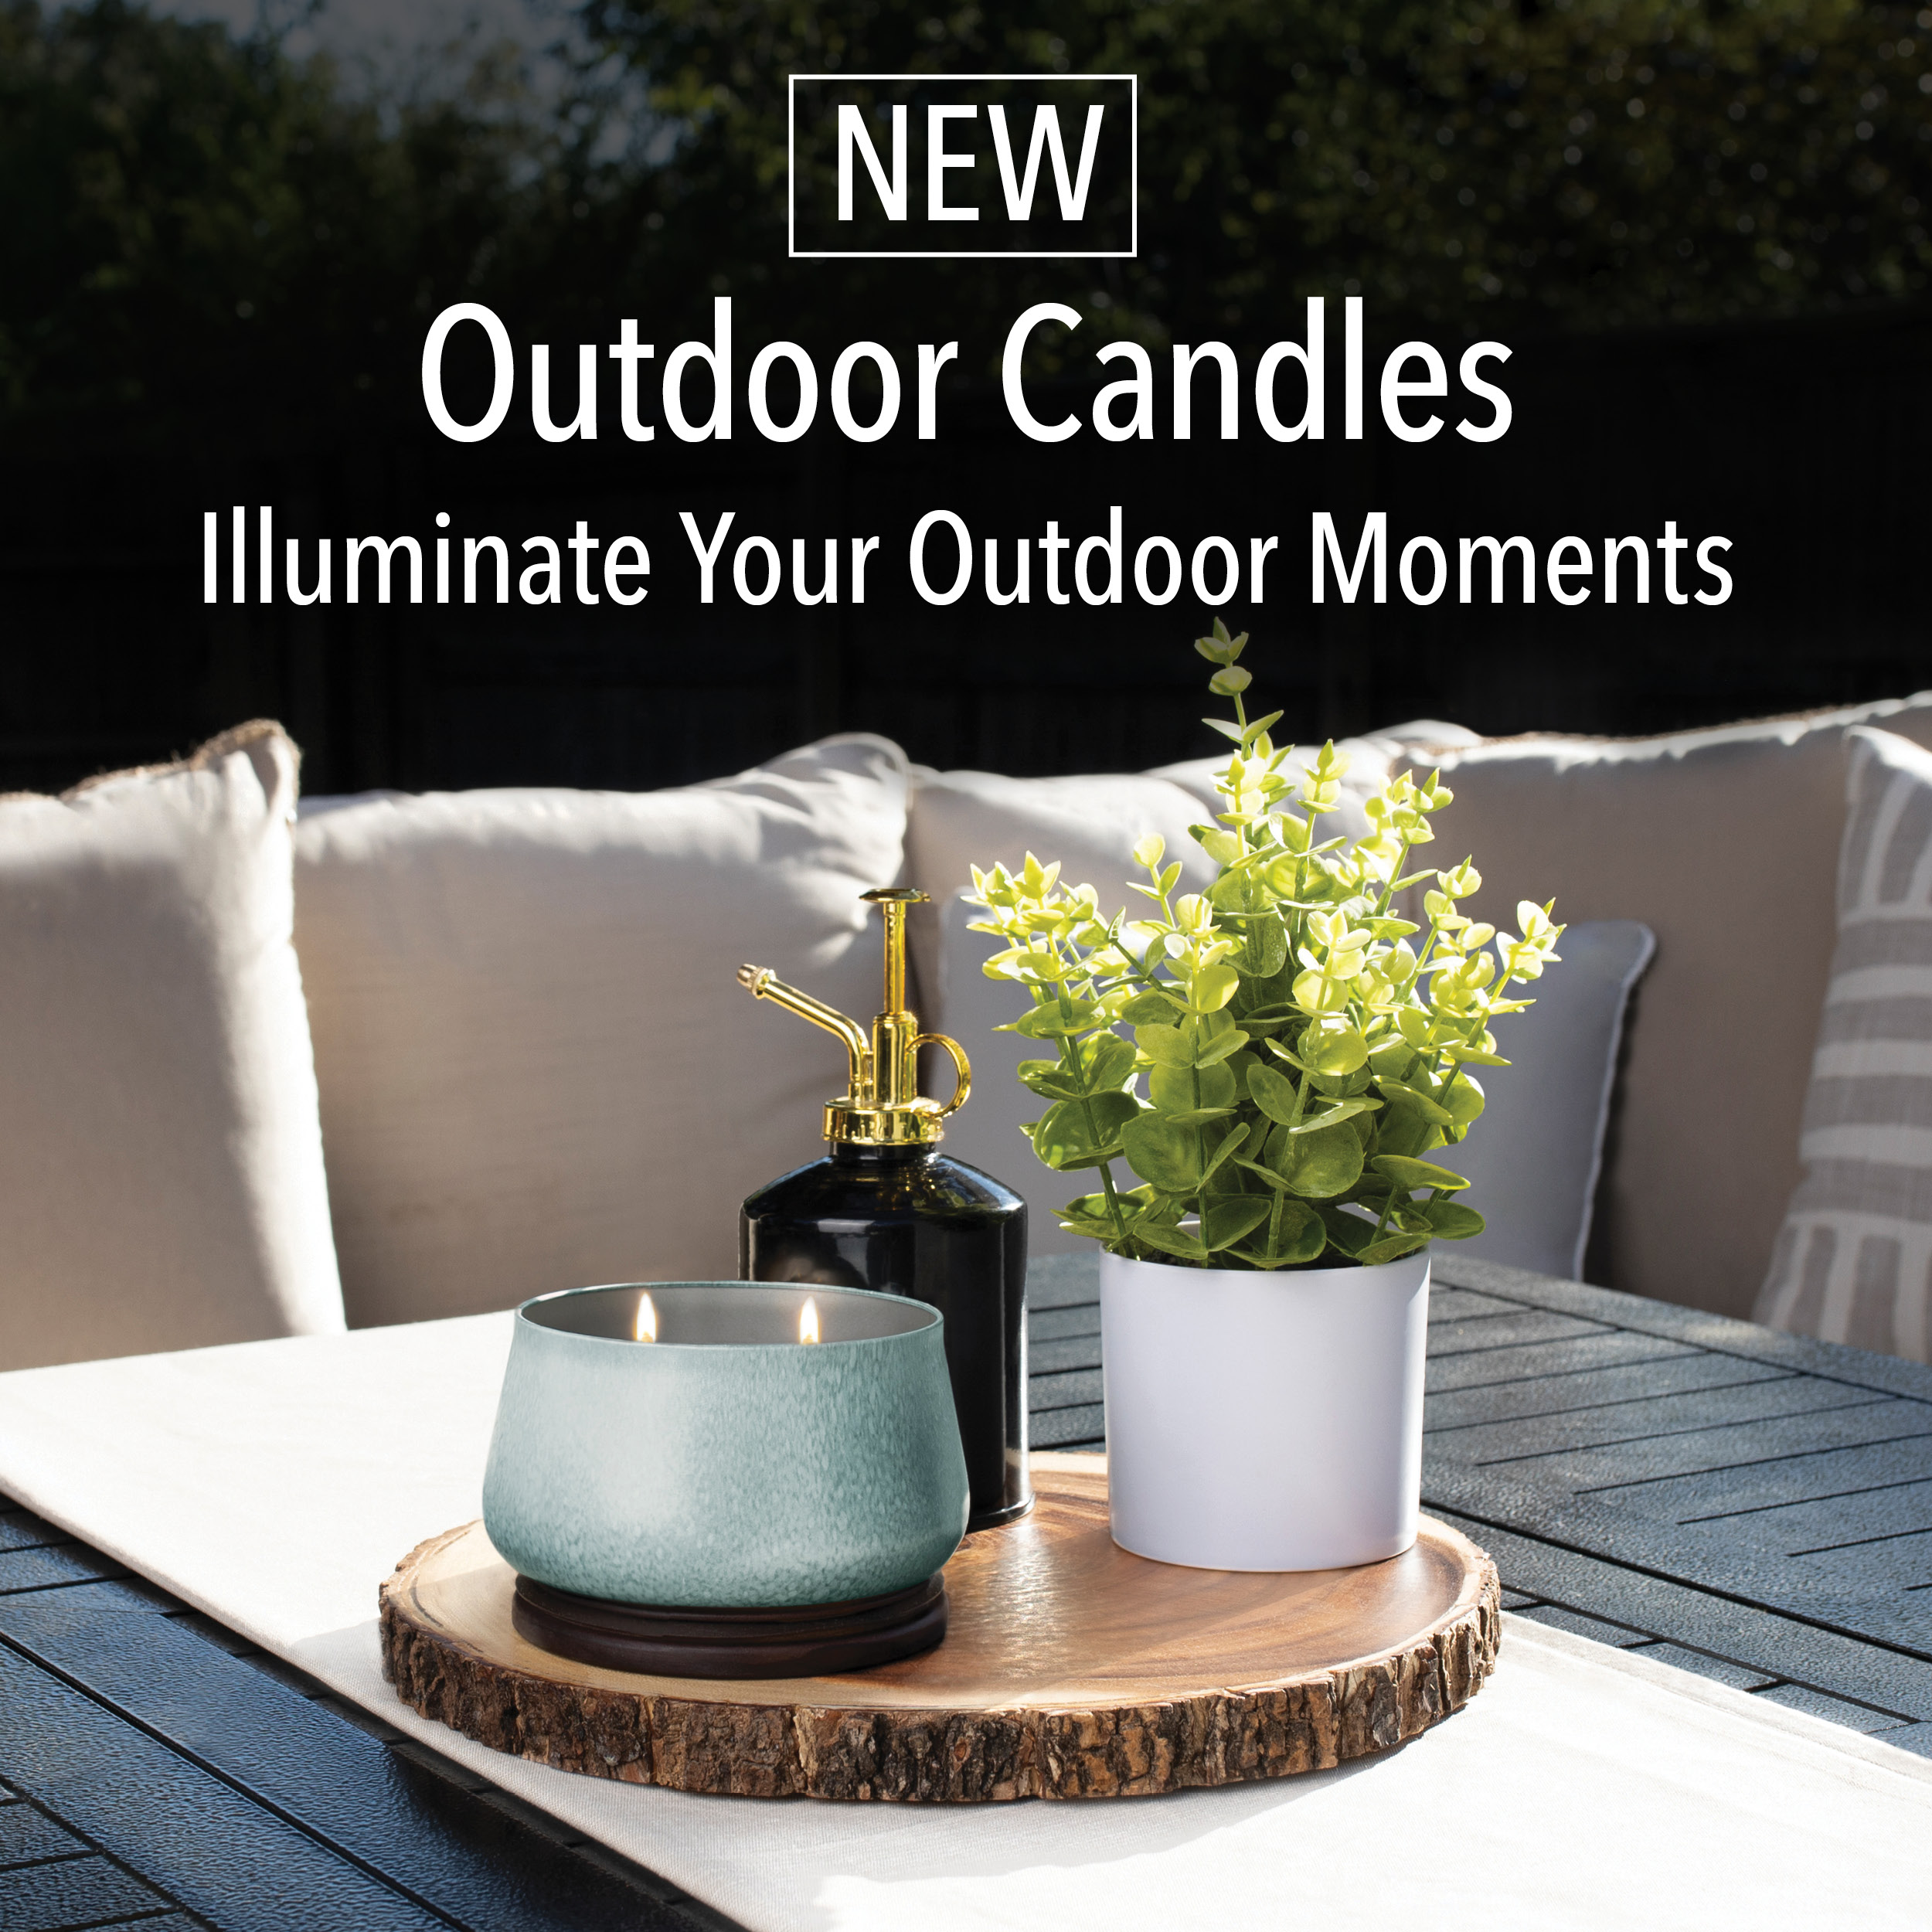 NEW Outdoor Candles